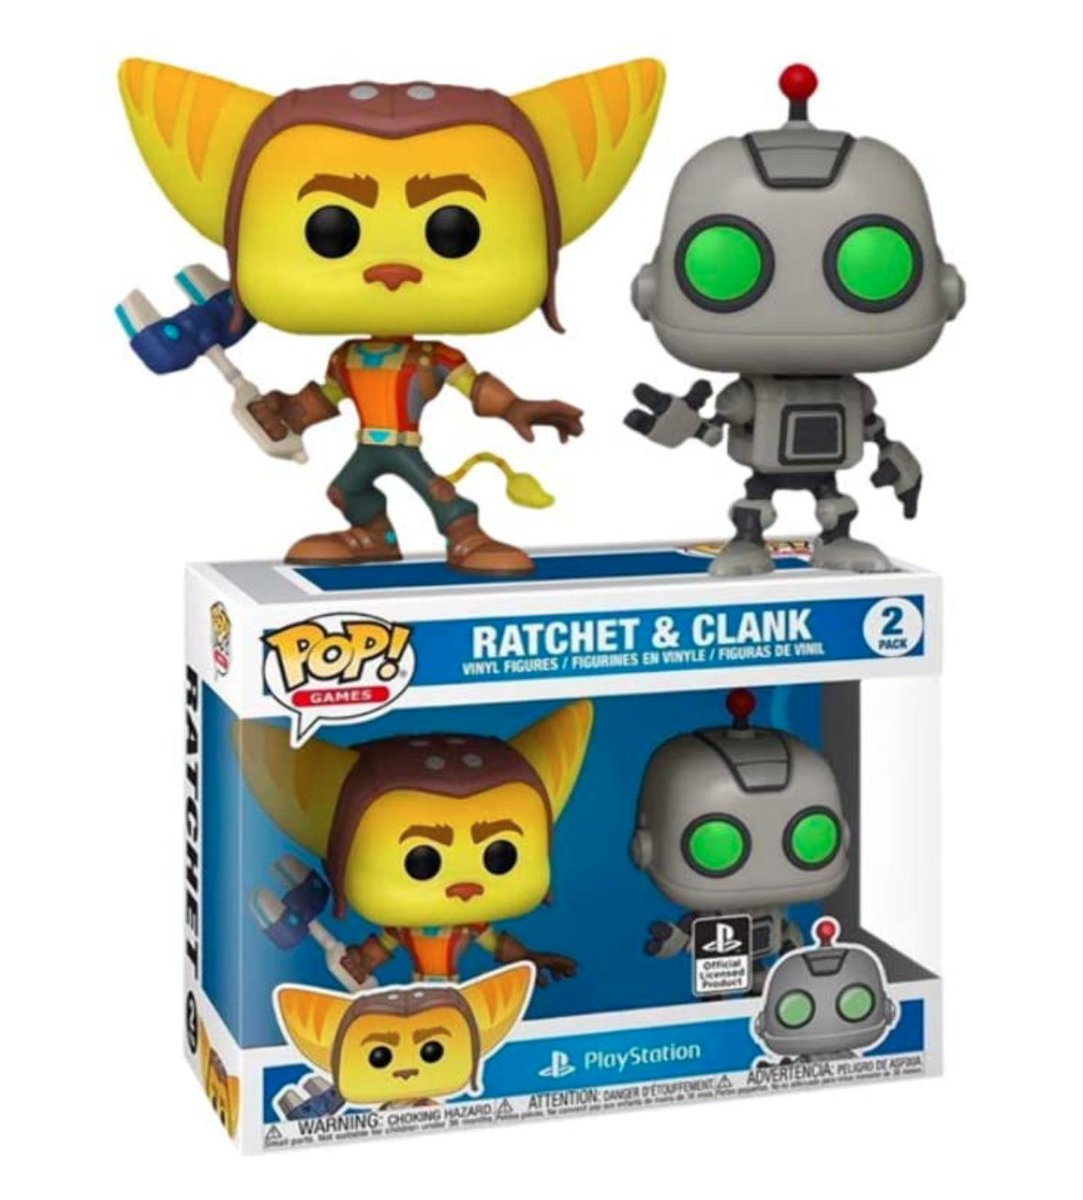 Funko Pop! Ratchet & Clank PlayStation Exclusive 2 Pack  Amazon USA 2